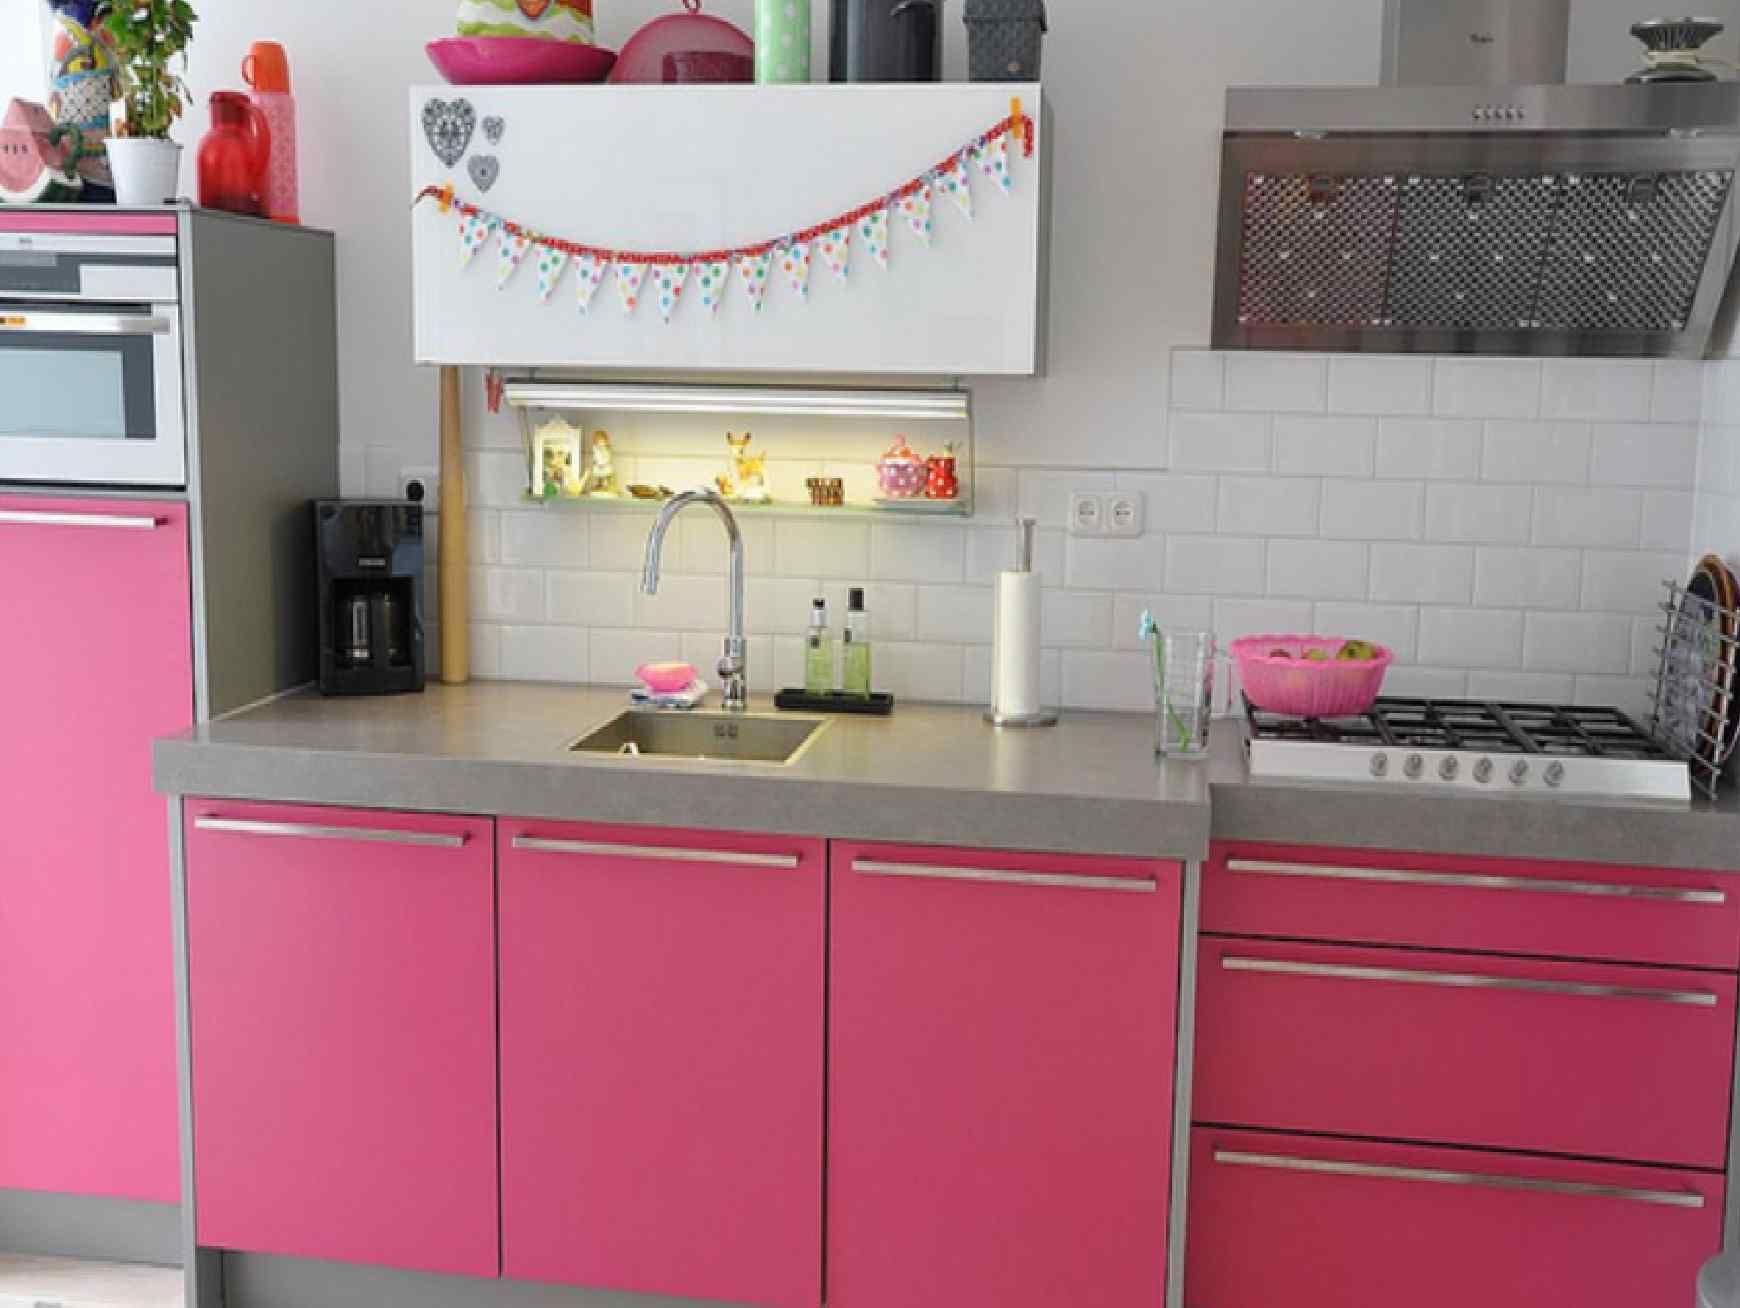 pink kitchen fresh ideas interior design - Interior Design Kitchen Ideas